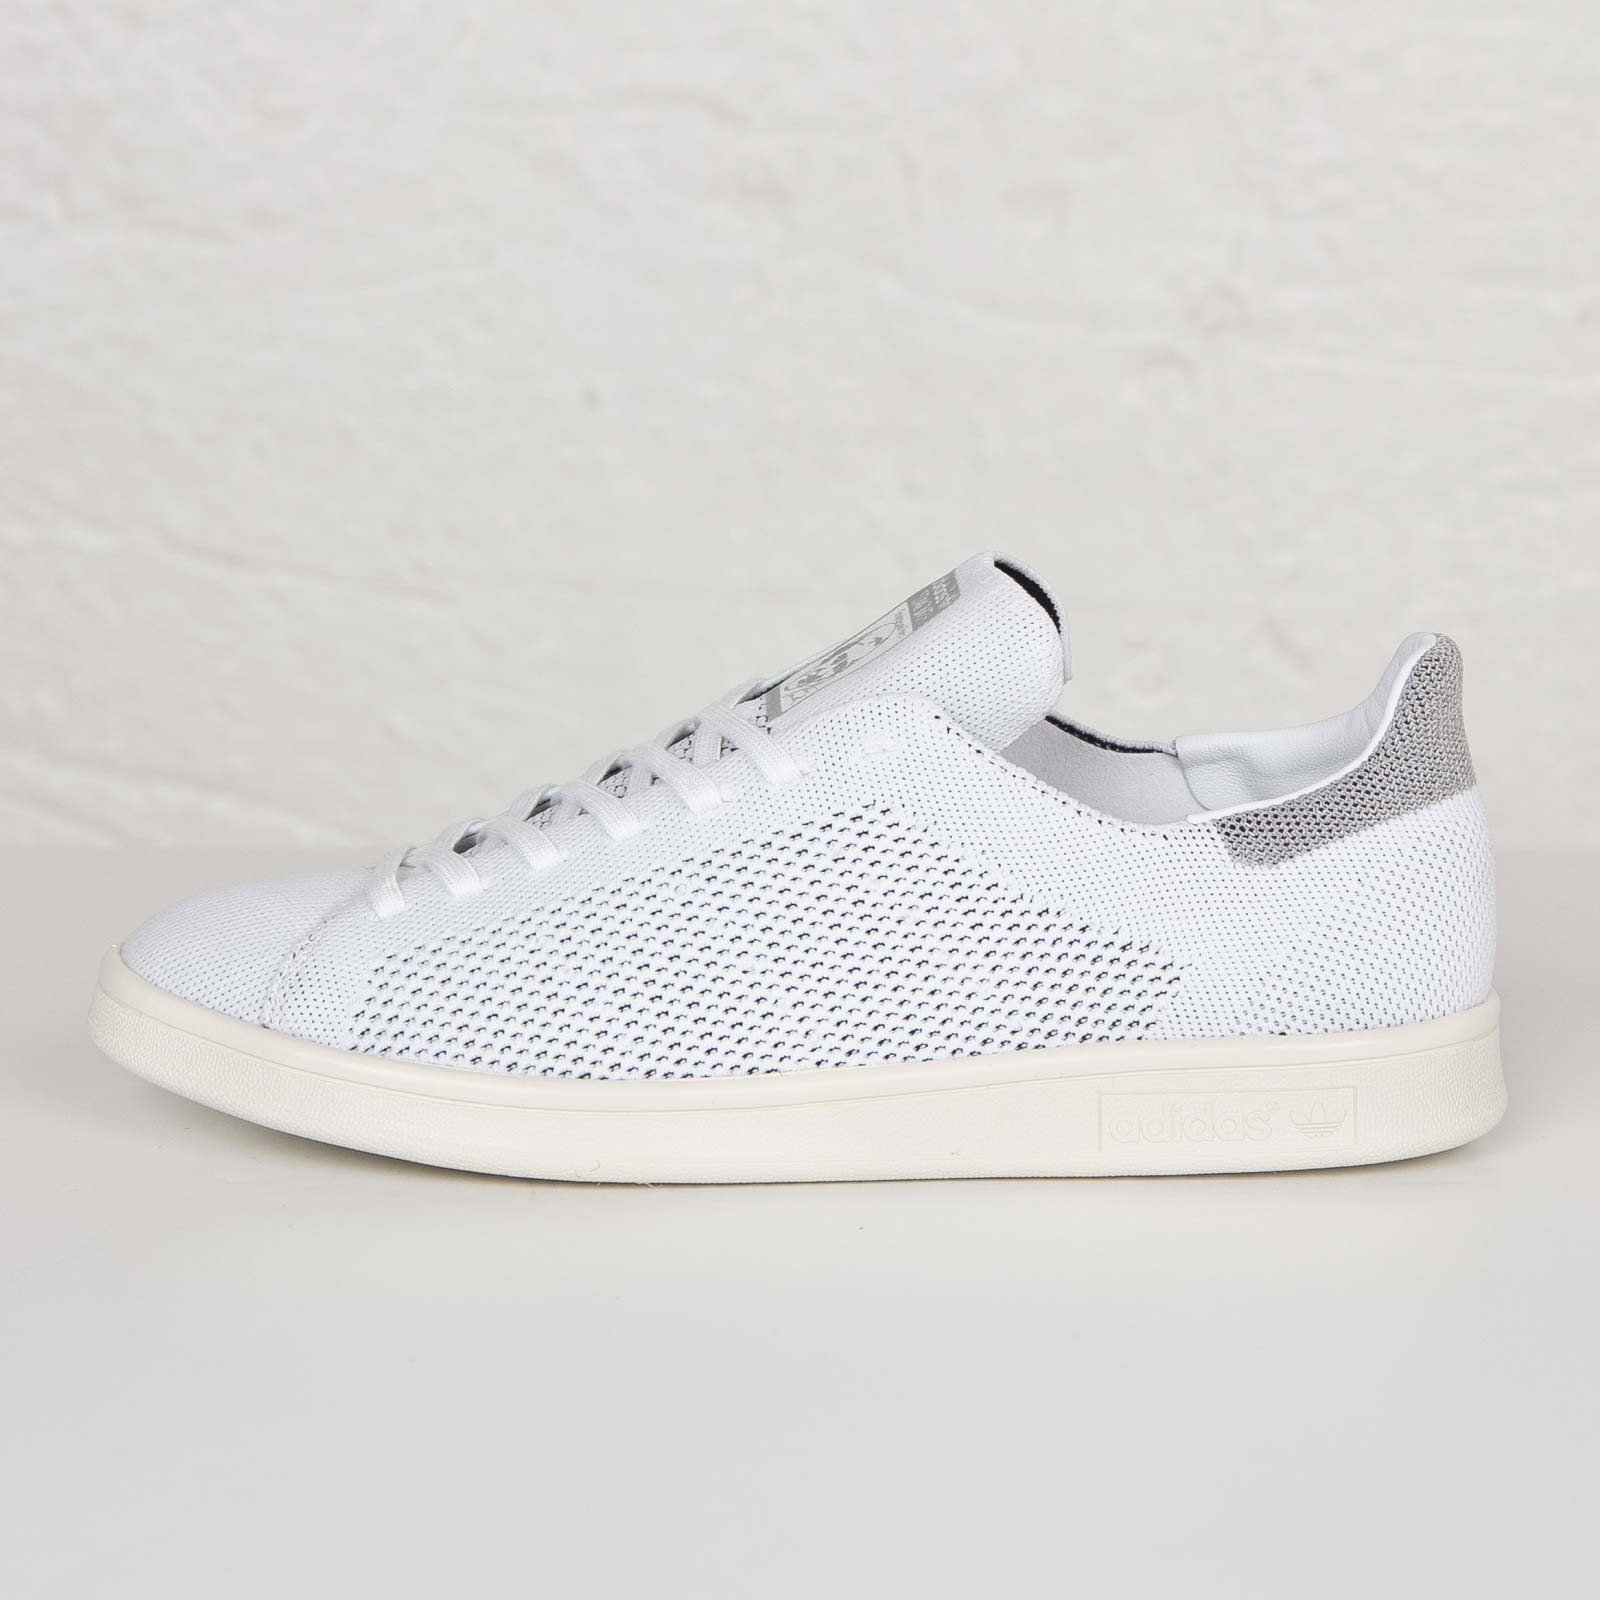 innovative design f8120 1c1ae ... adidas Stan Smith - Primeknit ...